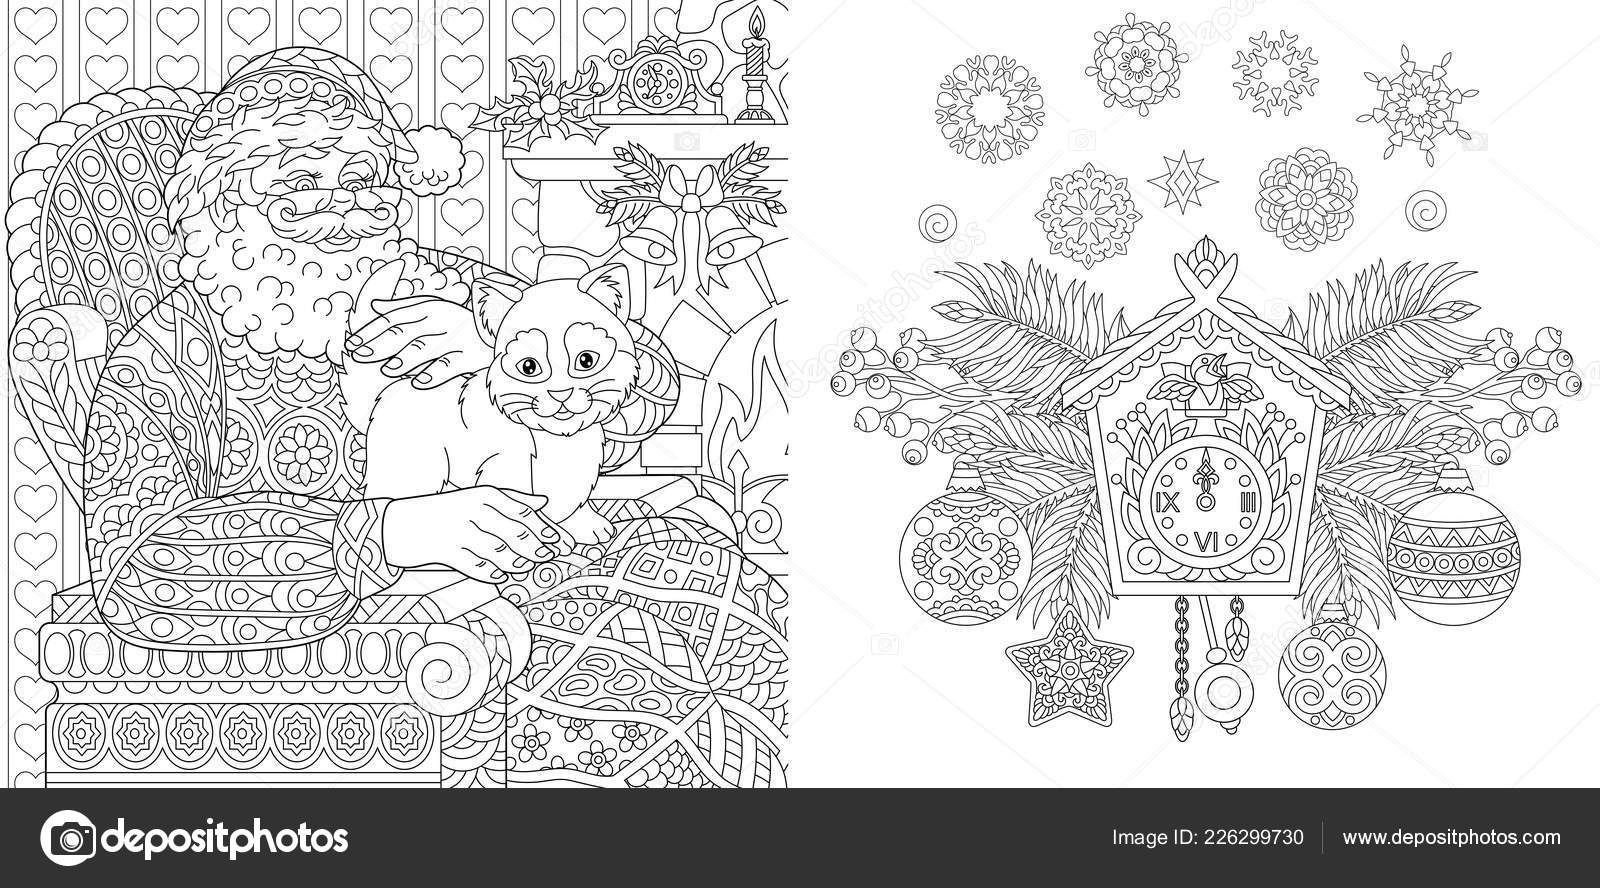 Happy New Year coloring pages | Free Coloring Pages | 888x1600